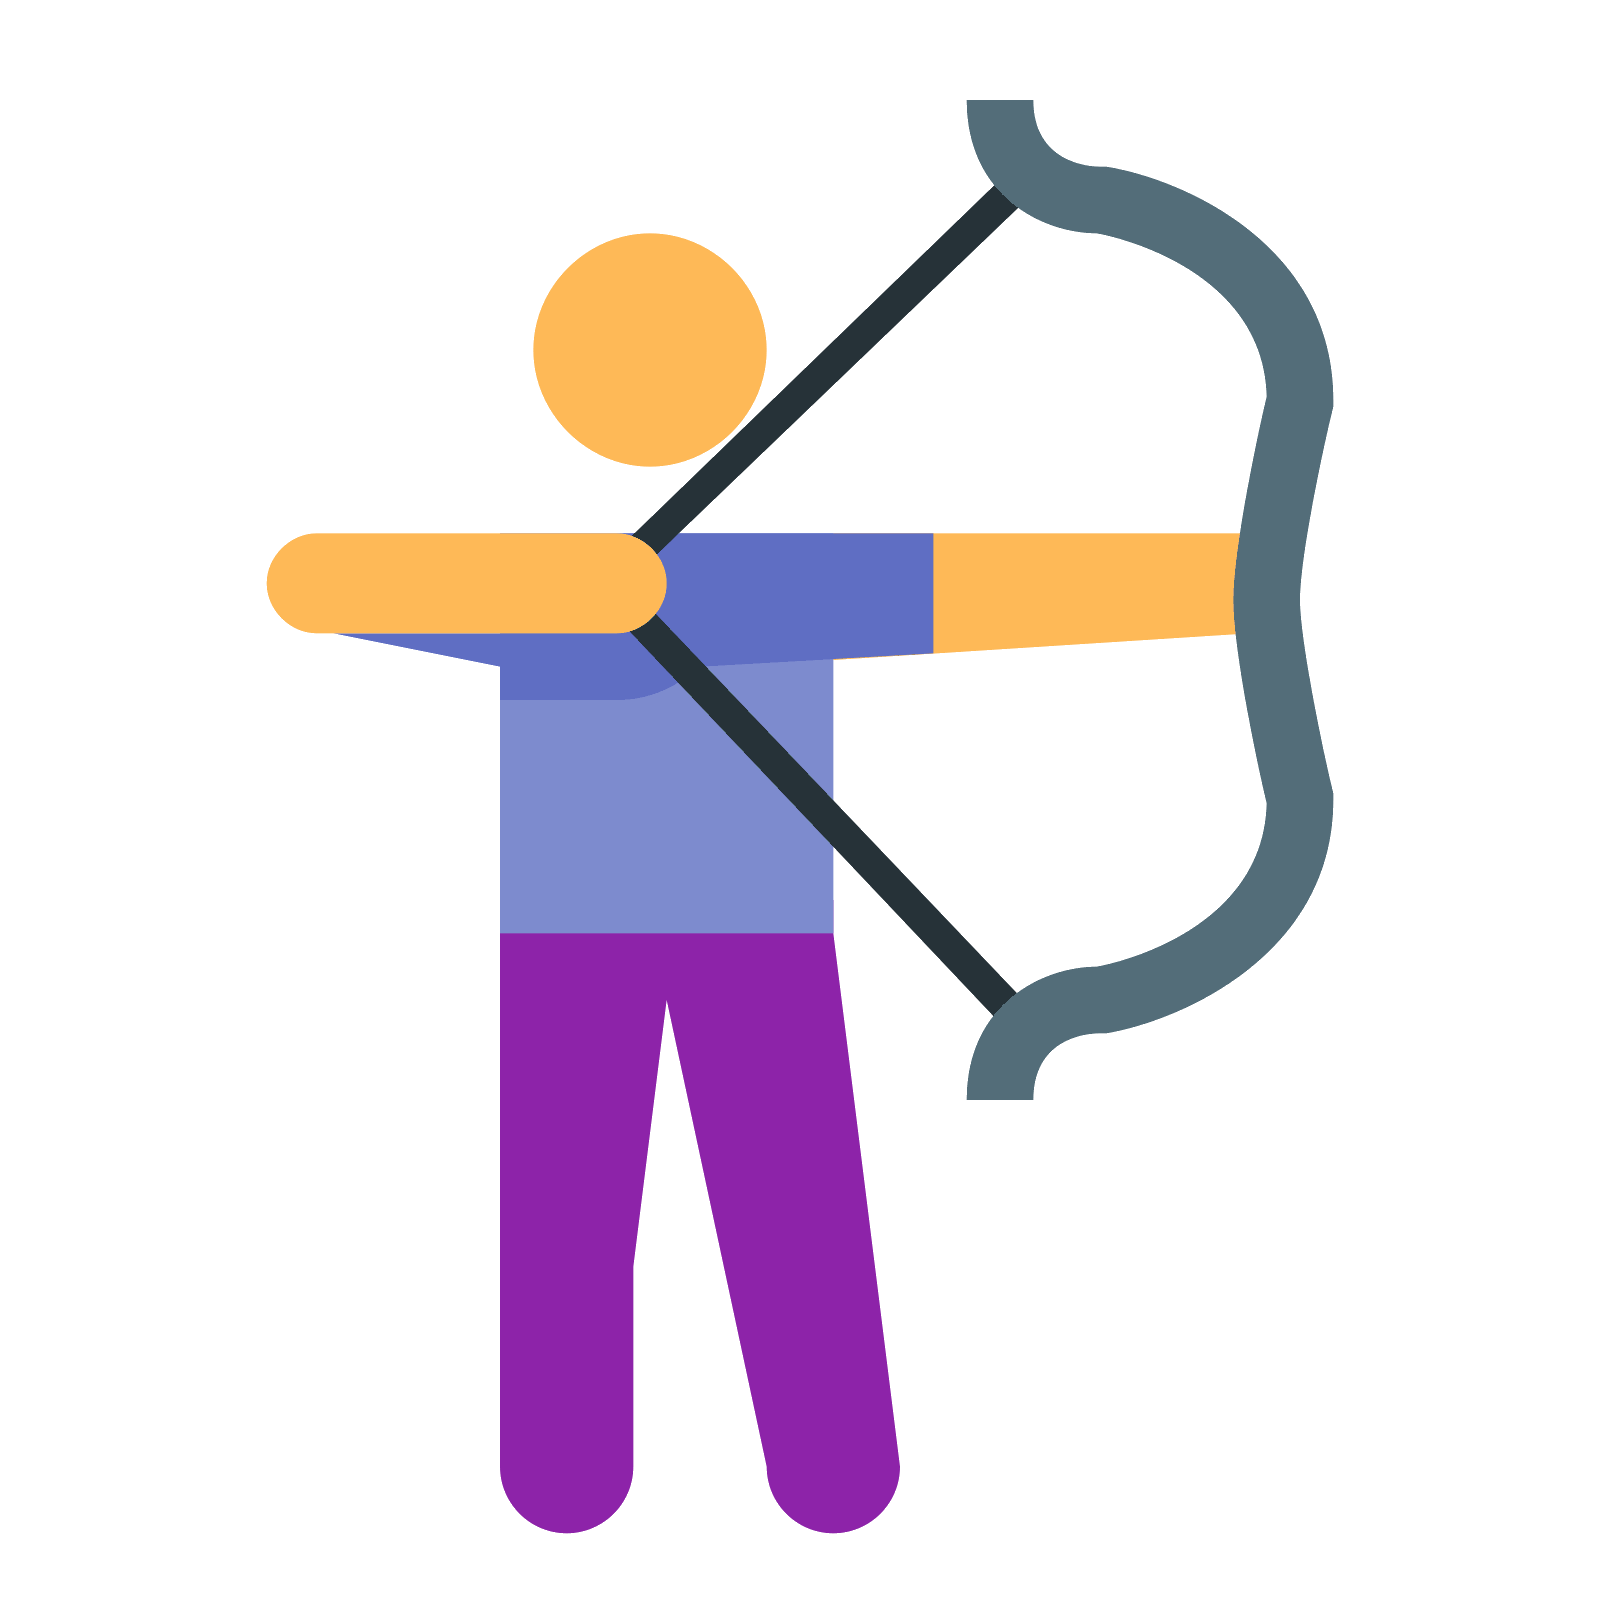 Archer clipart archer silhouette. Archery icon free download